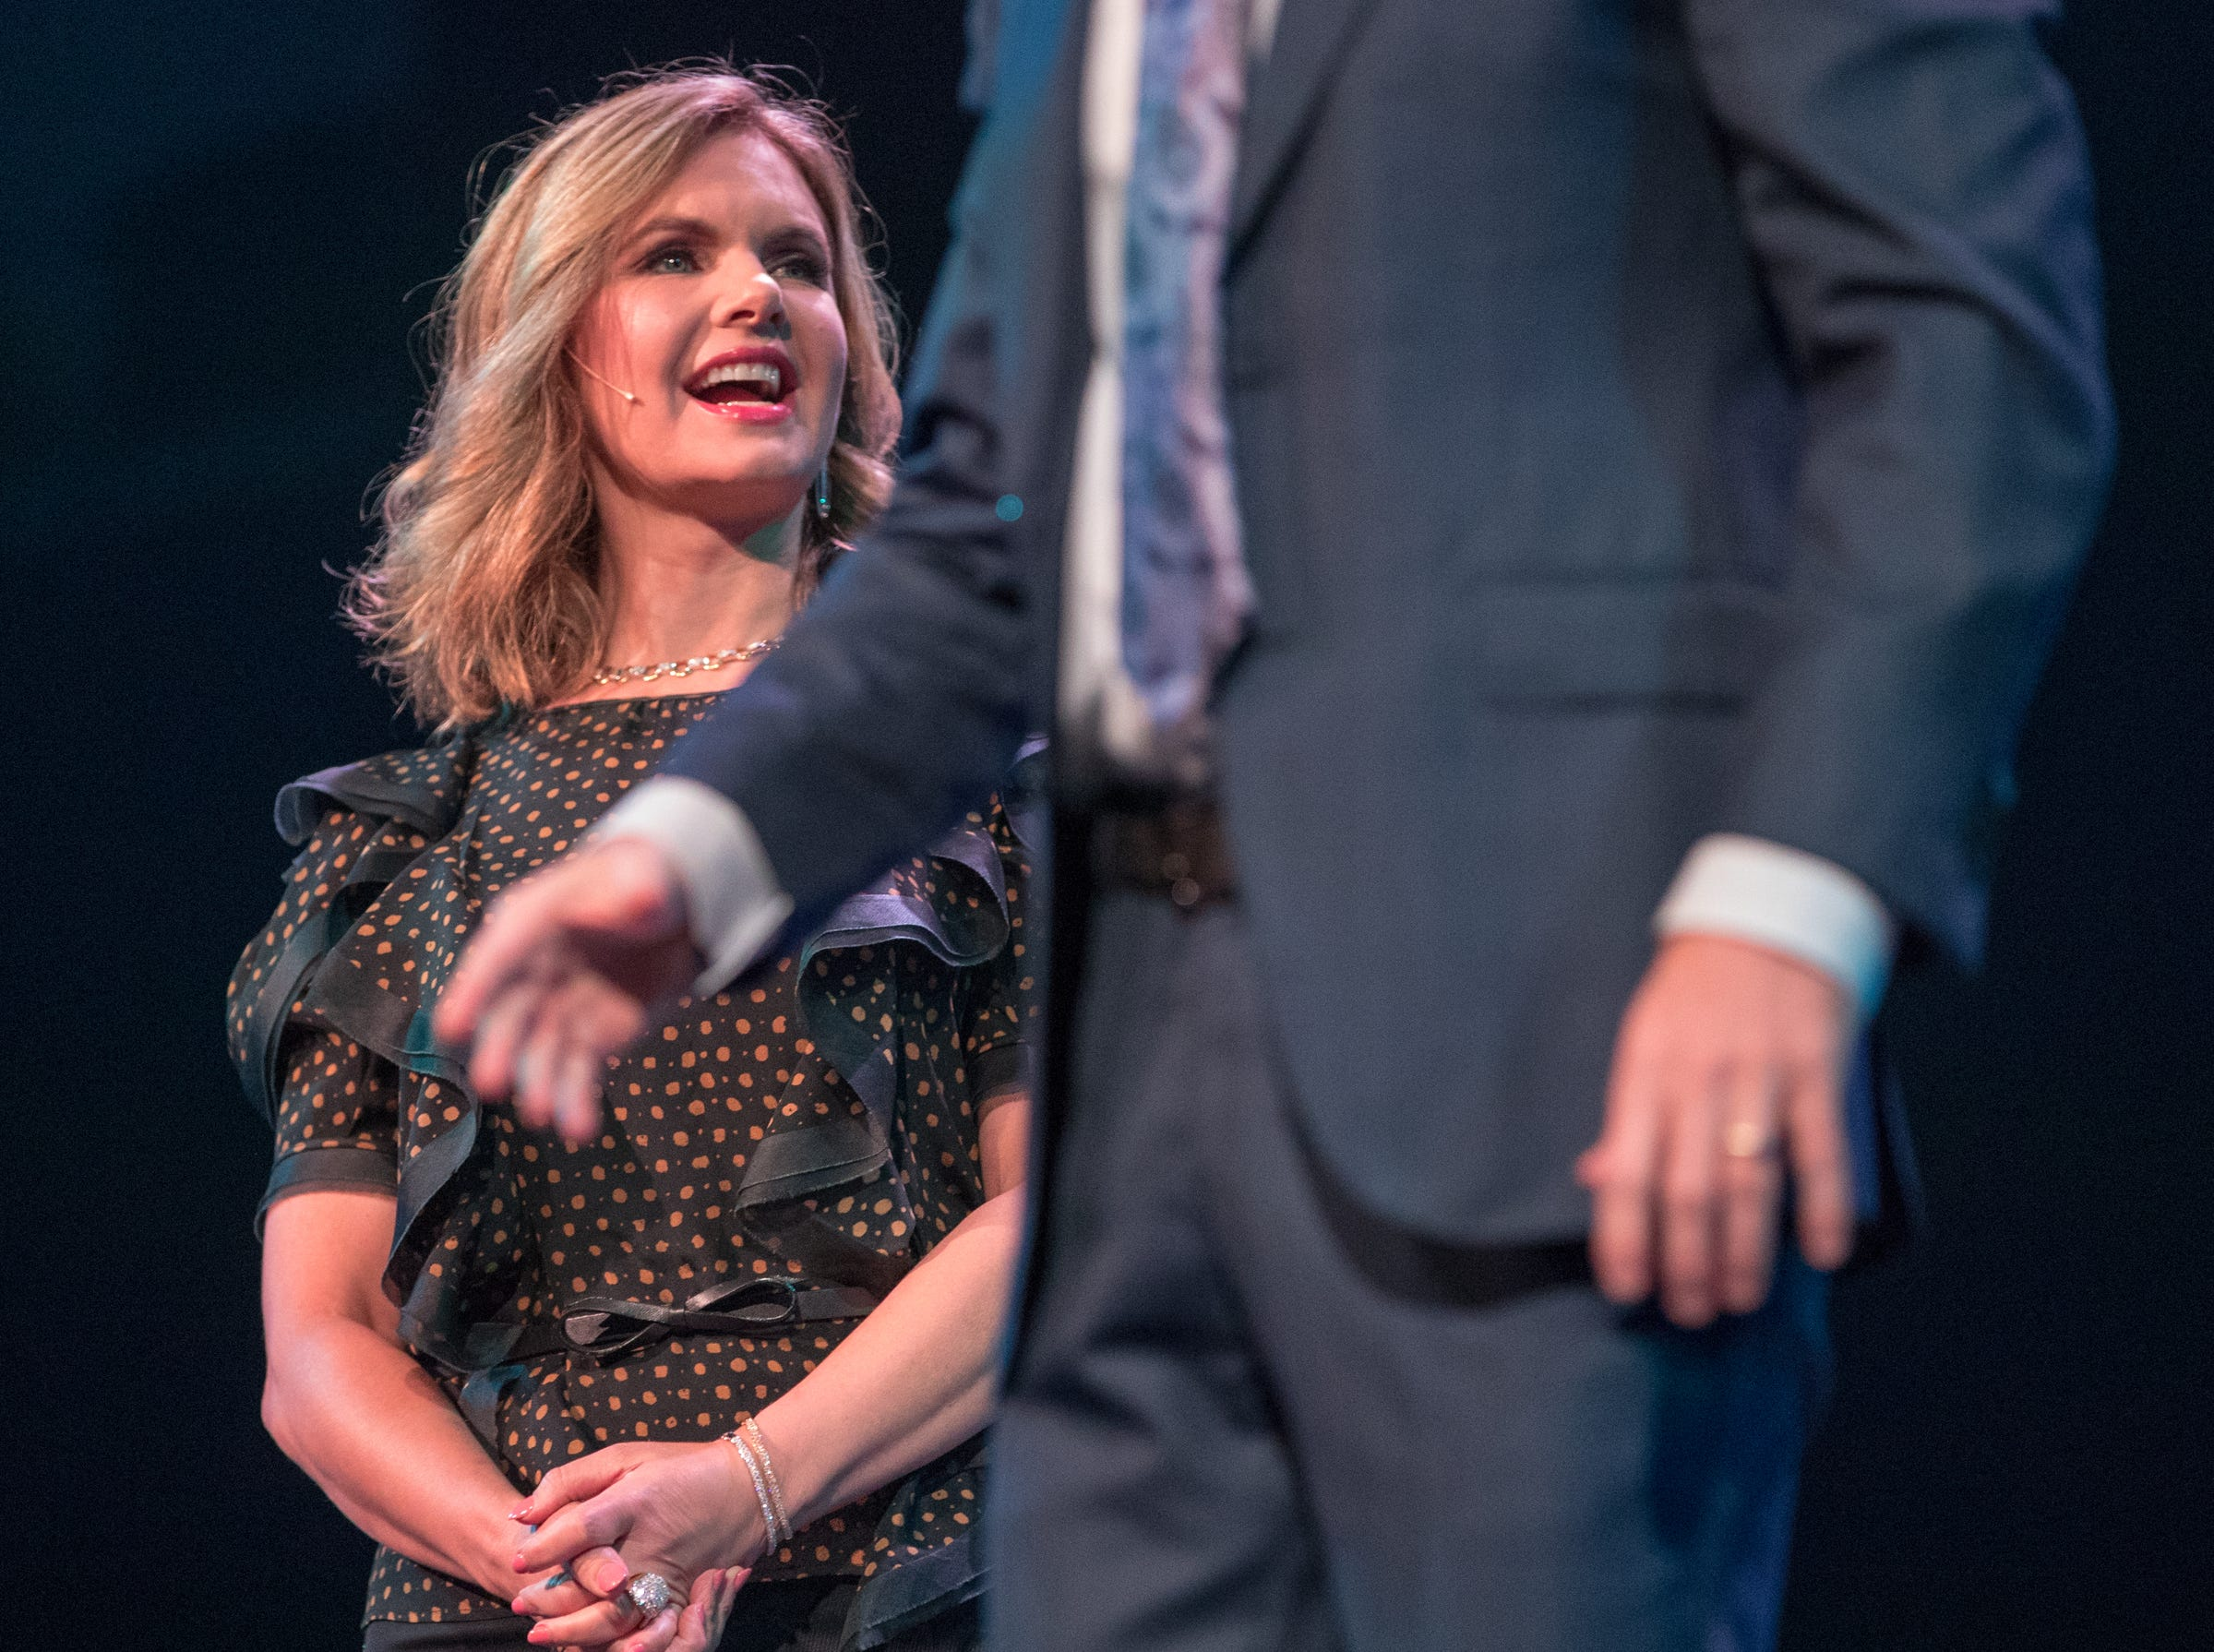 Bankers Life Fieldhouse, Indianapolis, Friday, Aug. 10, 2018. The event, dubbed Night of Hope with Joel and Victoria, drew about 8,000 people to the arena for the event with the Houston-based televangelist.